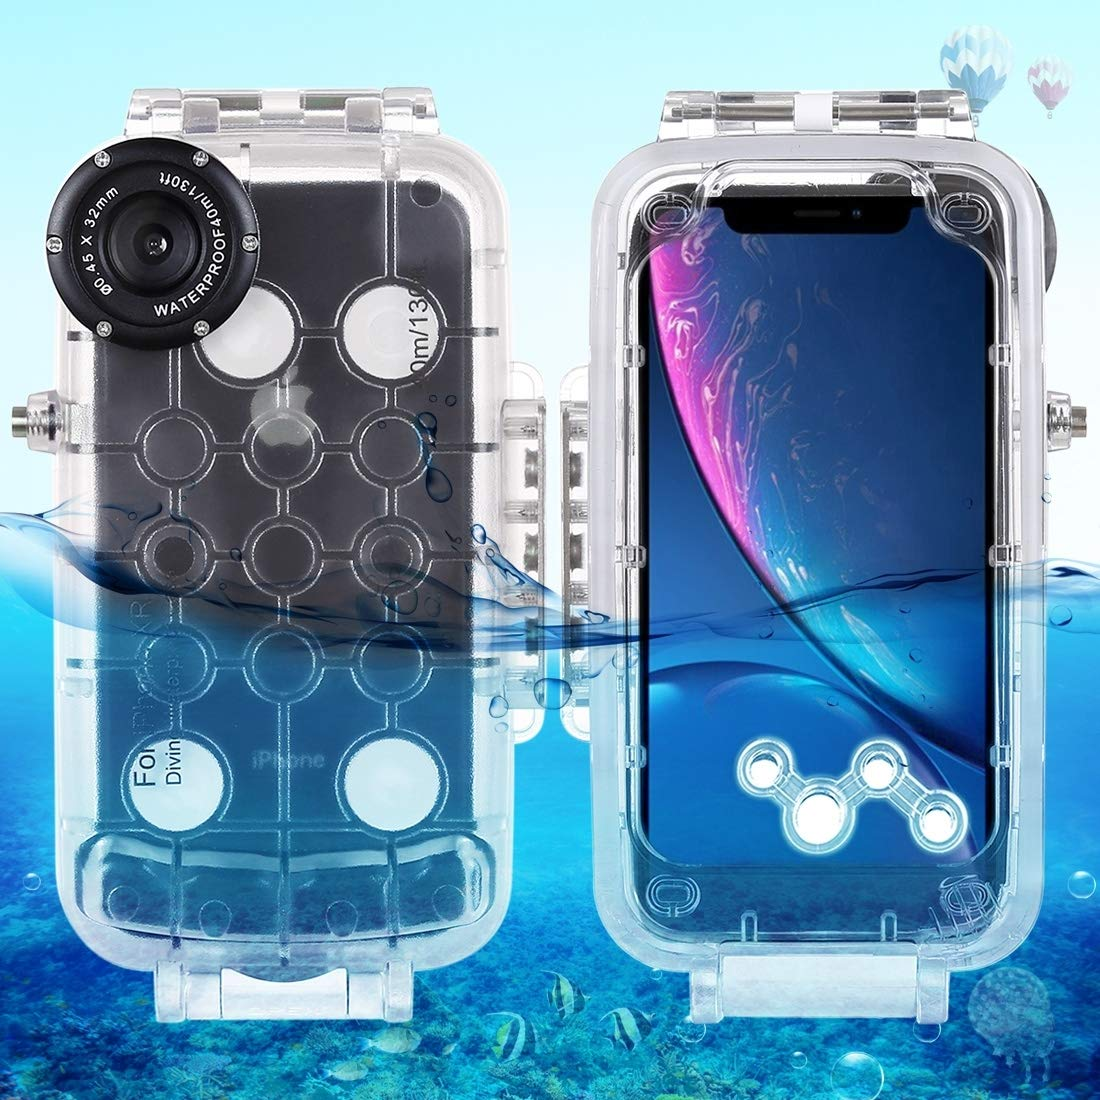 Lstwgc iPhone XR Case, HAWEEL 40m/130ft Waterproof Diving Housing Photo Video Taking Underwater Cover Case for iPhone XR (Color : Transparent)